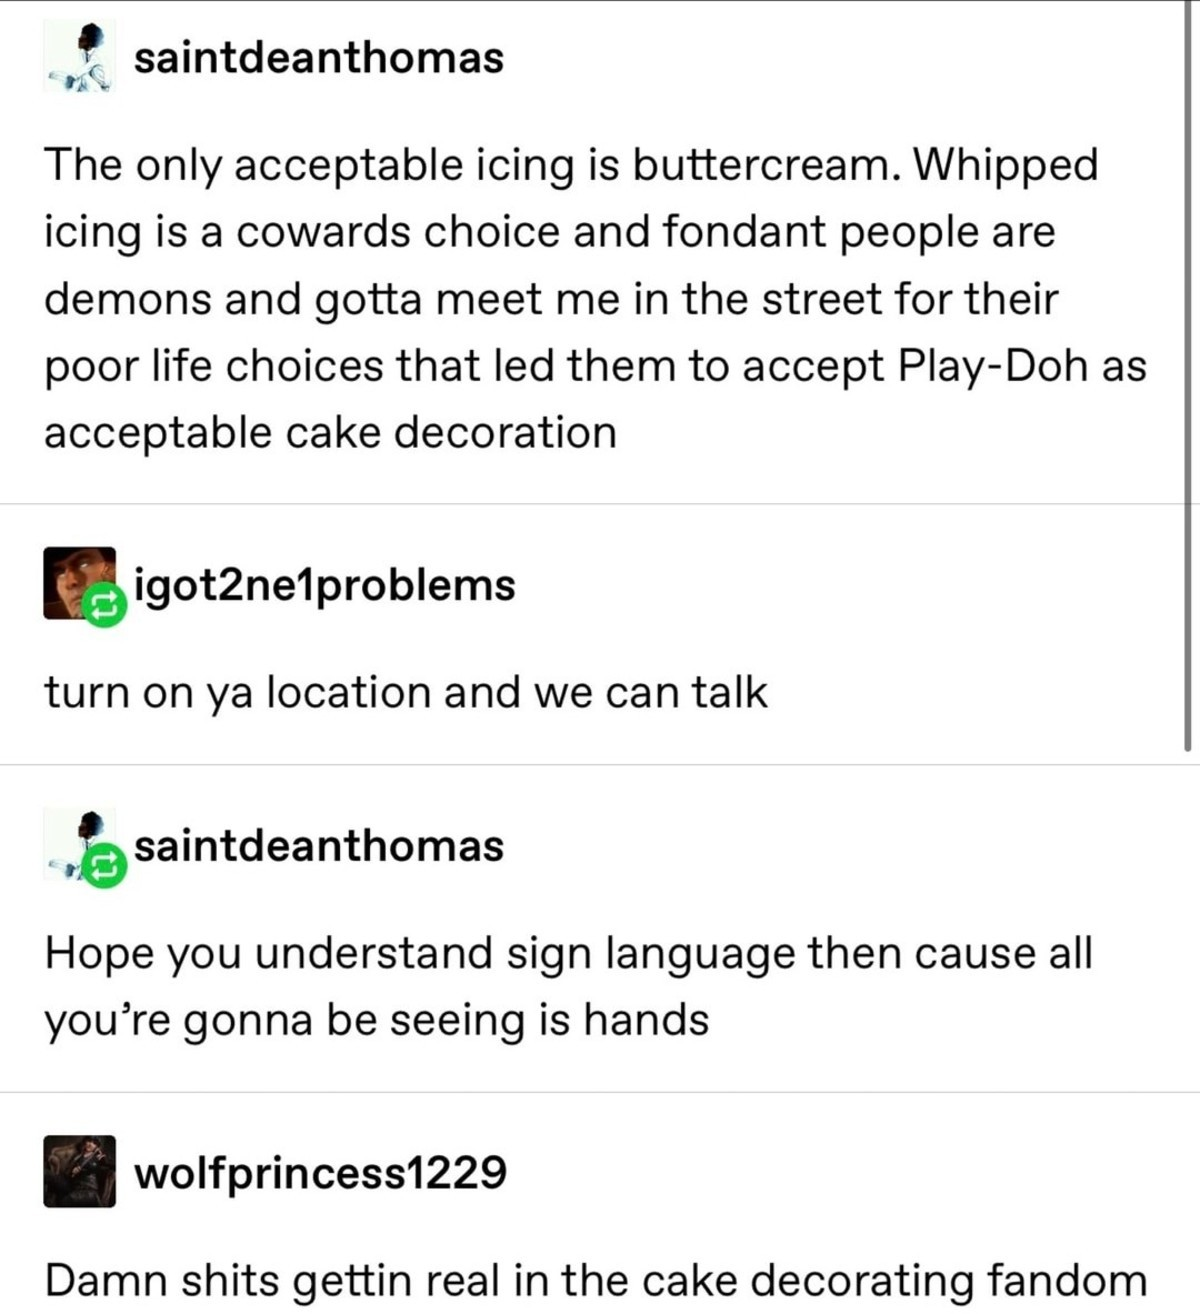 Sign language. .. Cream cheese is superior in every way. that pussy-ass buttercream, no taste except sweet. Cream cheese gives you a rainbow of awesome on your tongue and has a b